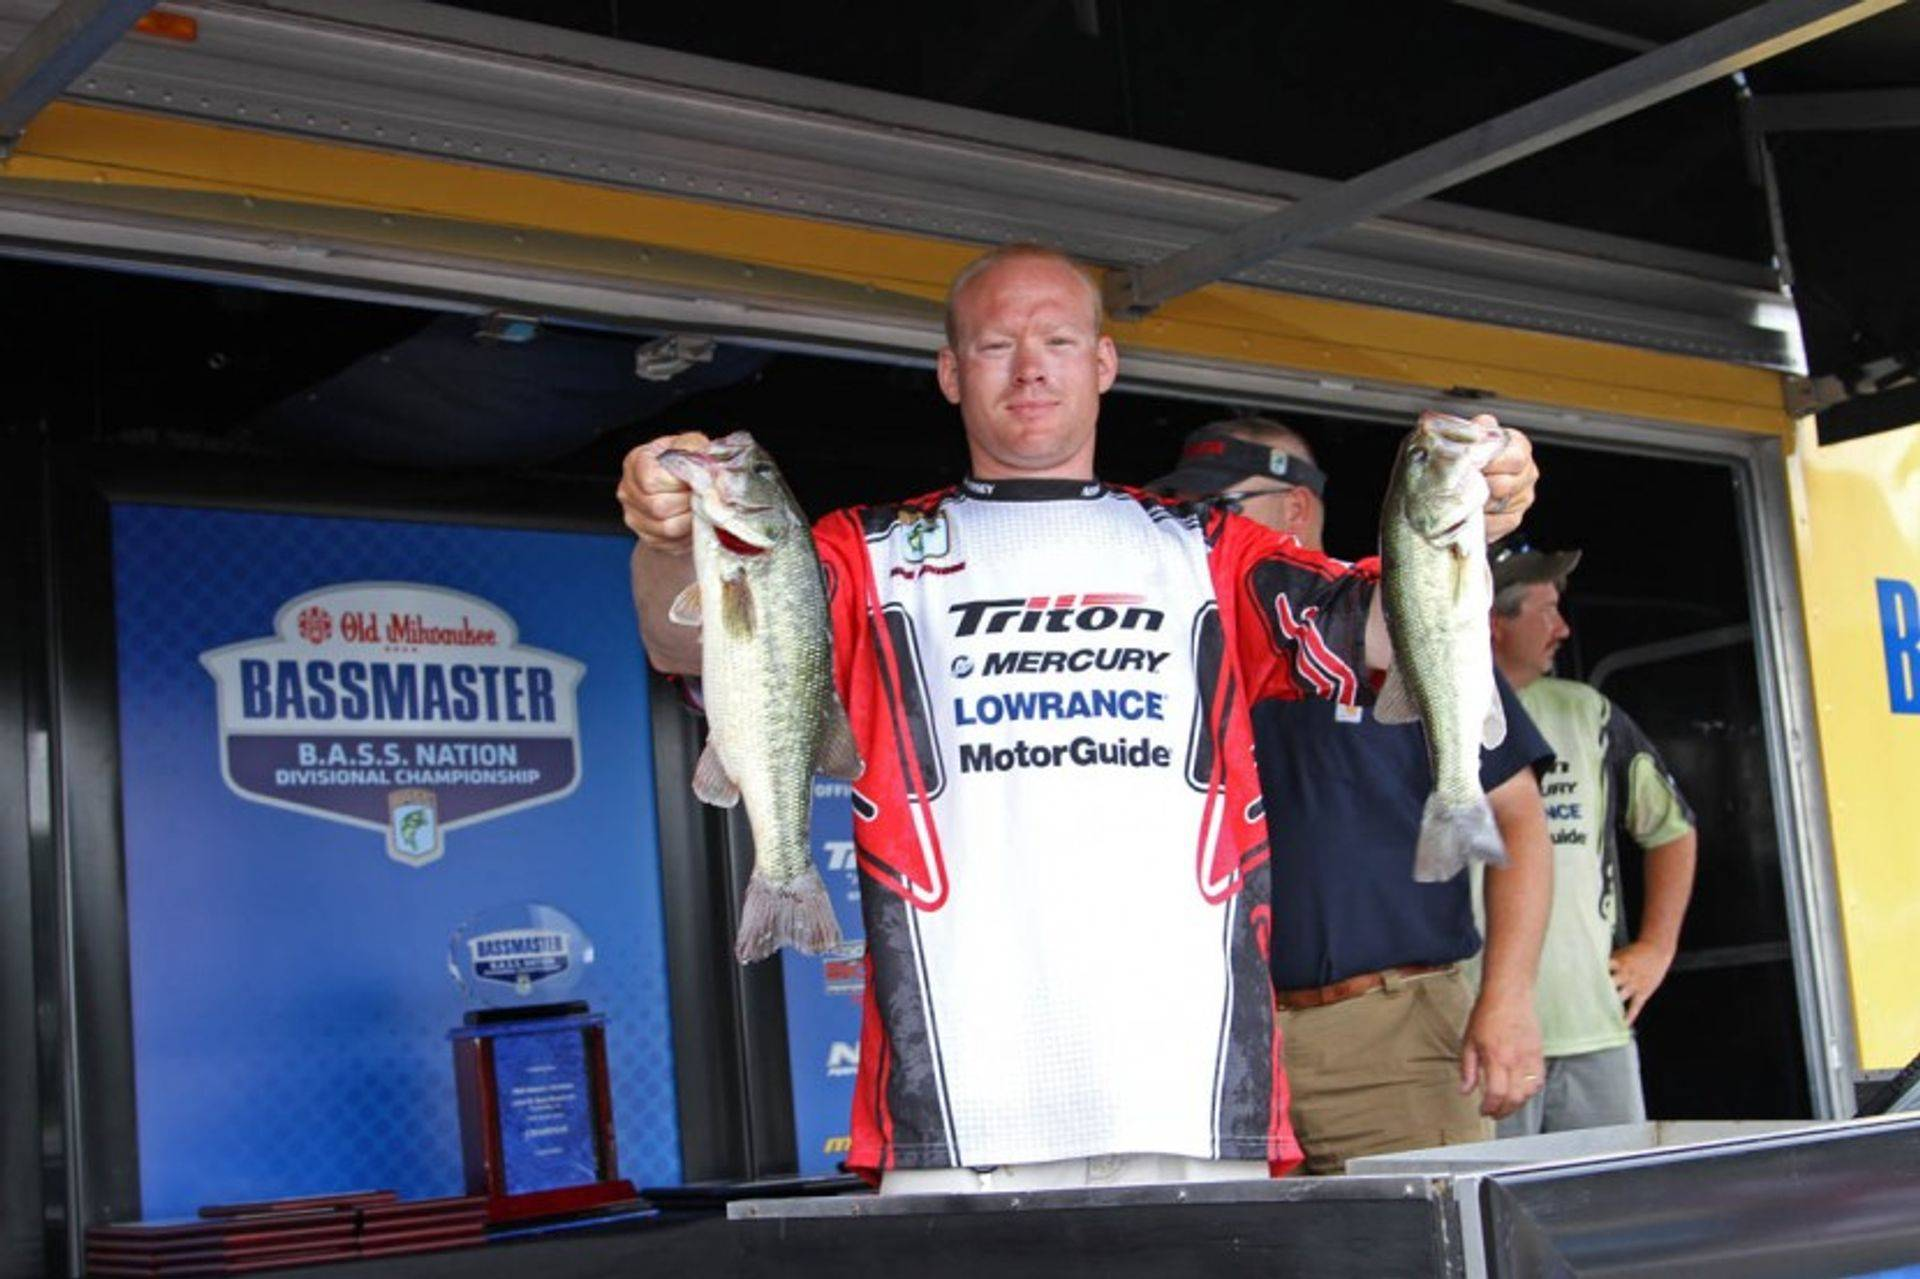 Mike Sentore Bassmaster, bass fishing videos